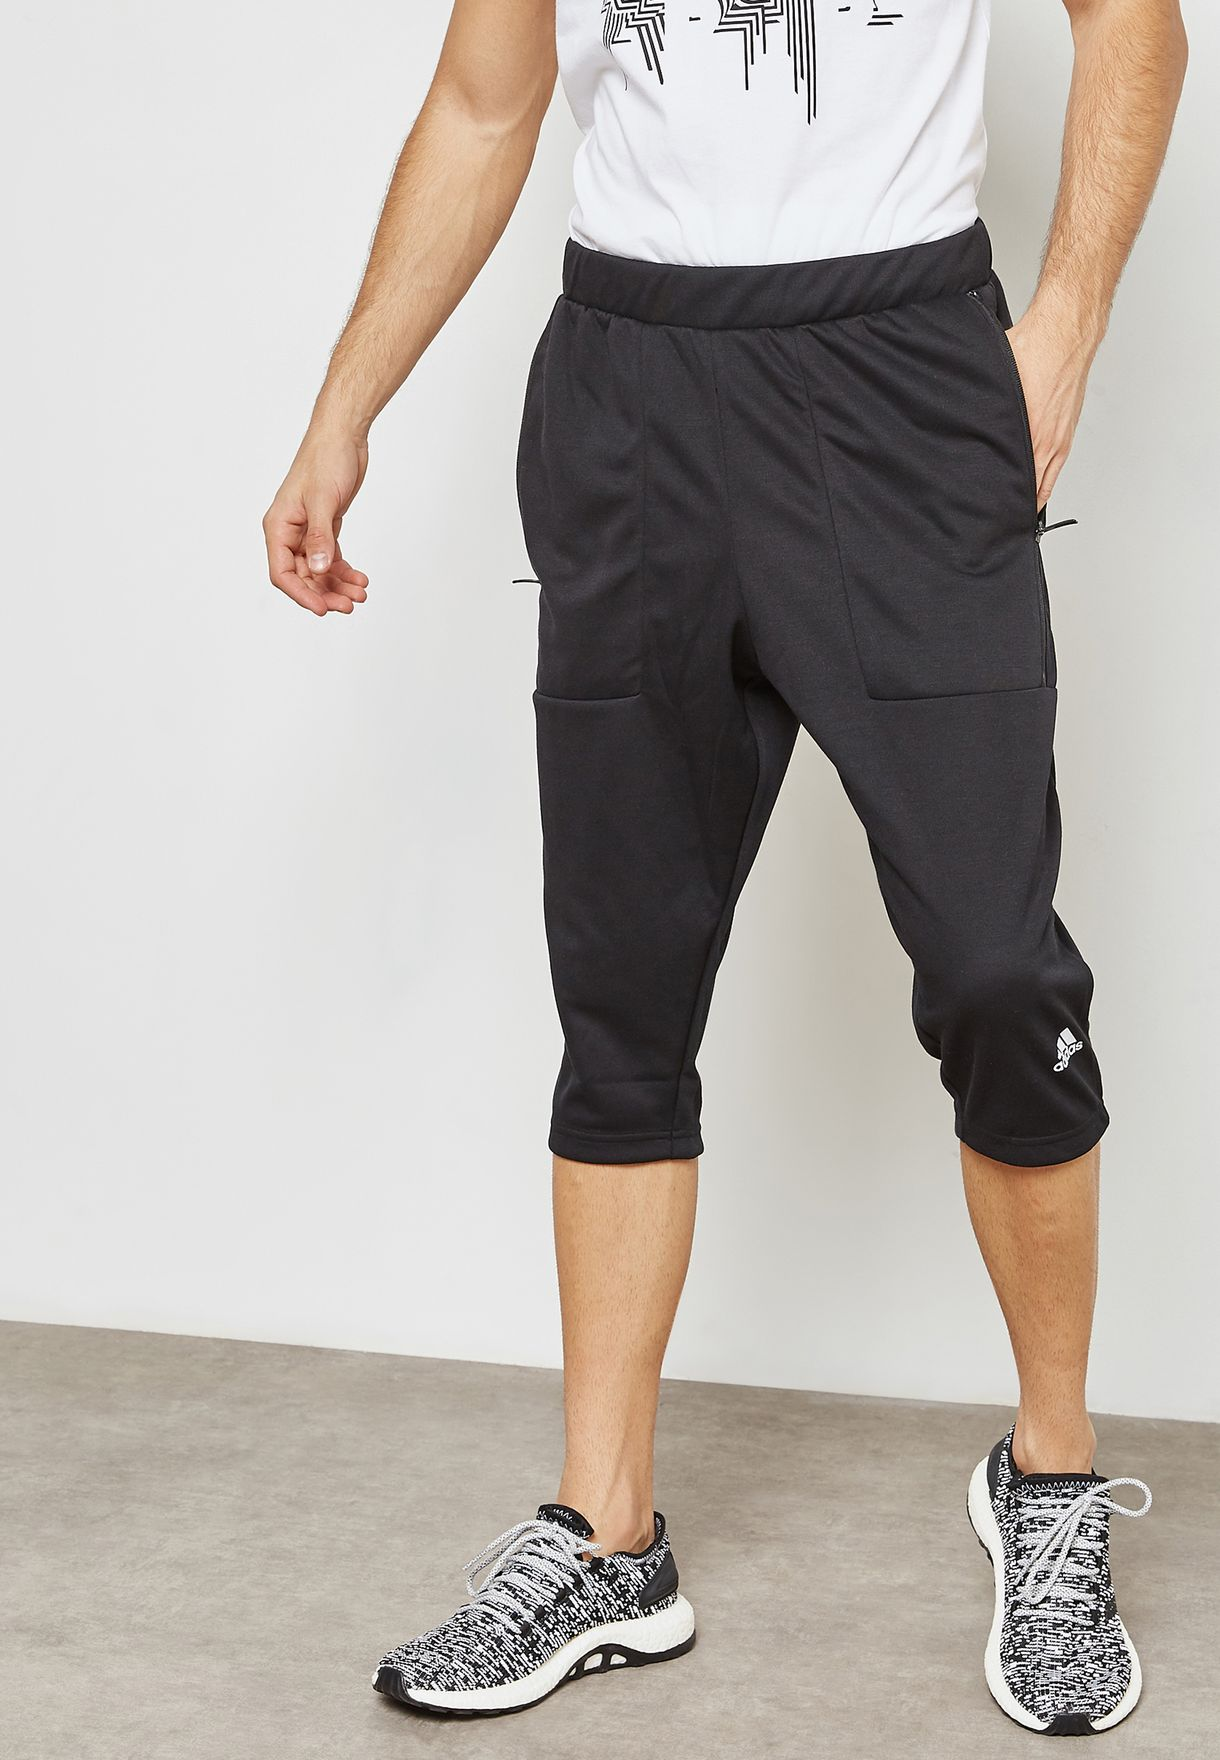 new style 0679c 1cd1d ID Drop Crotch 3 4 Sweatpants